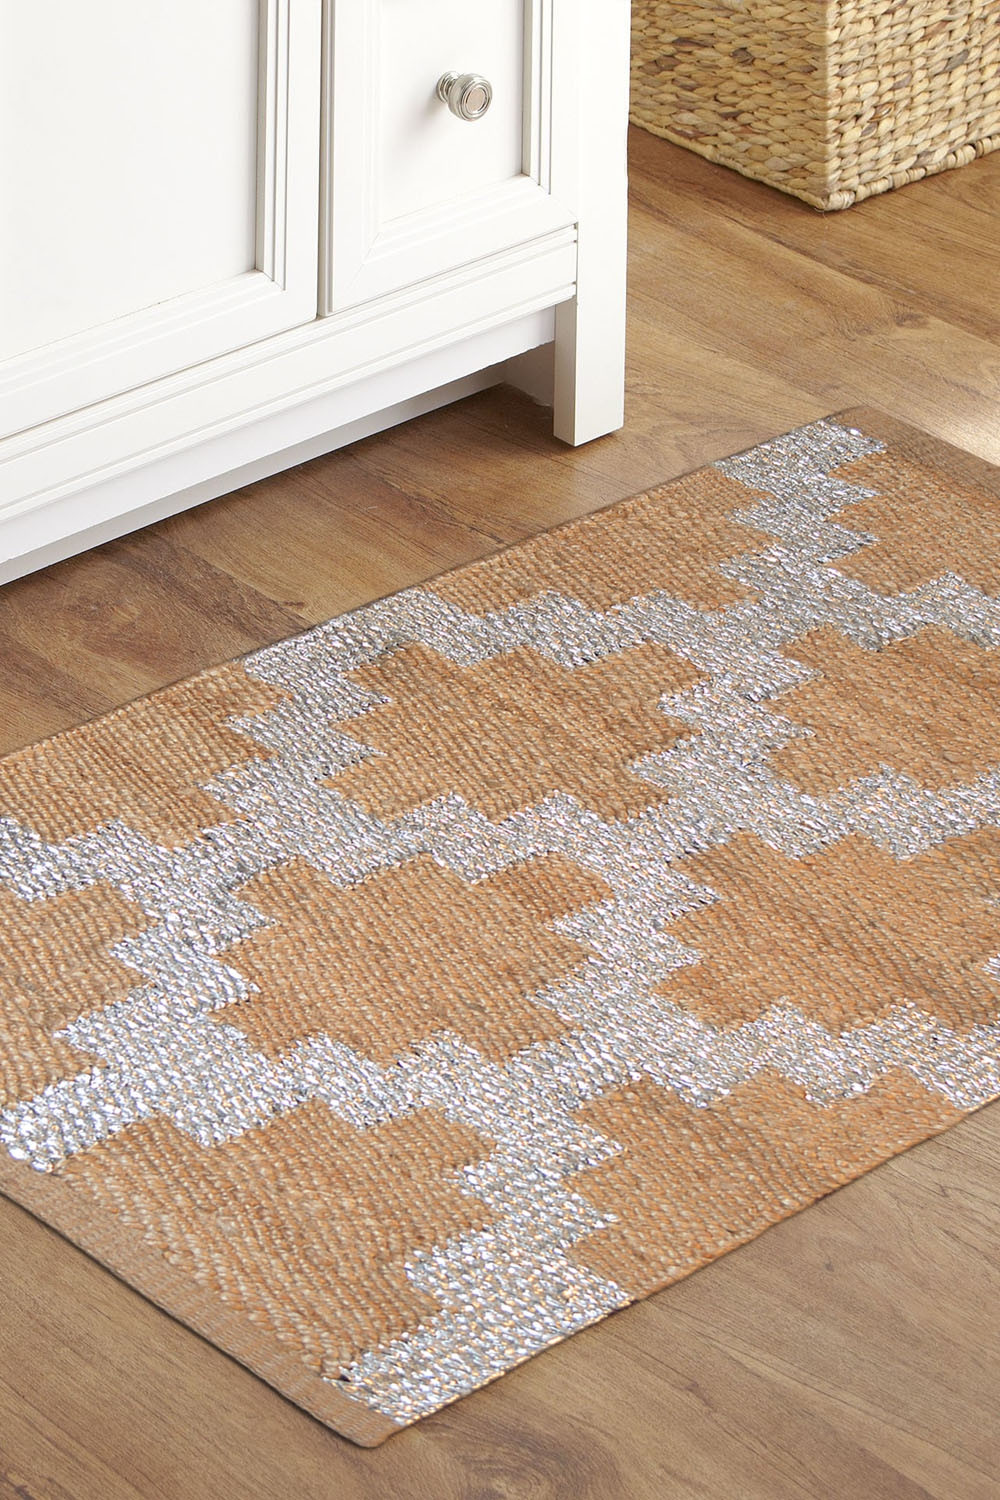 Jute Durries And Jute Rugs At Best Price Online For Living Room